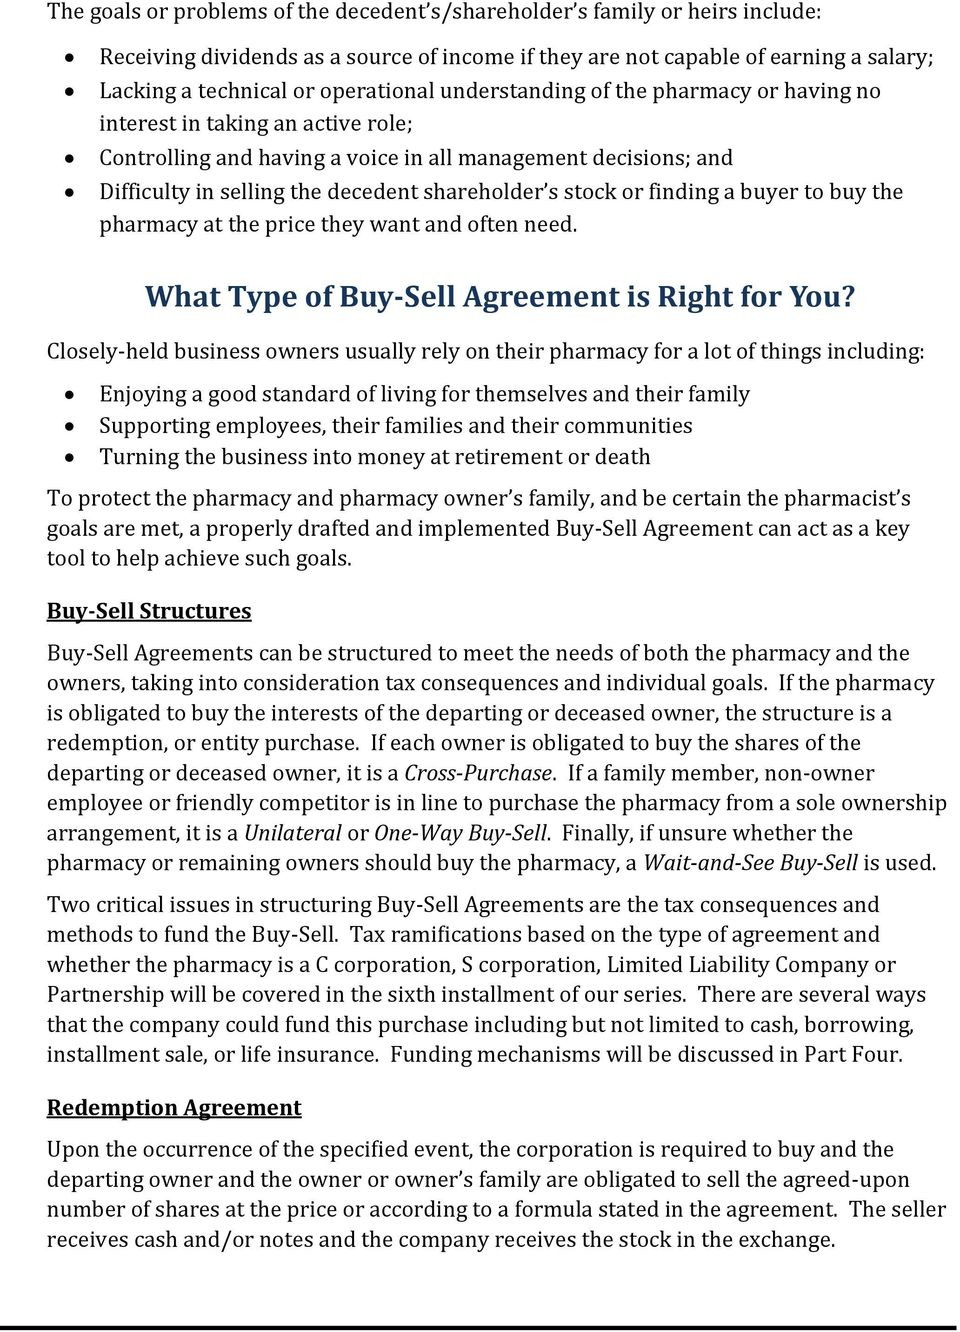 shareholder s stock or finding a buyer to buy the pharmacy at the price they want and often need. What Type of Buy-Sell Agreement is Right for You?